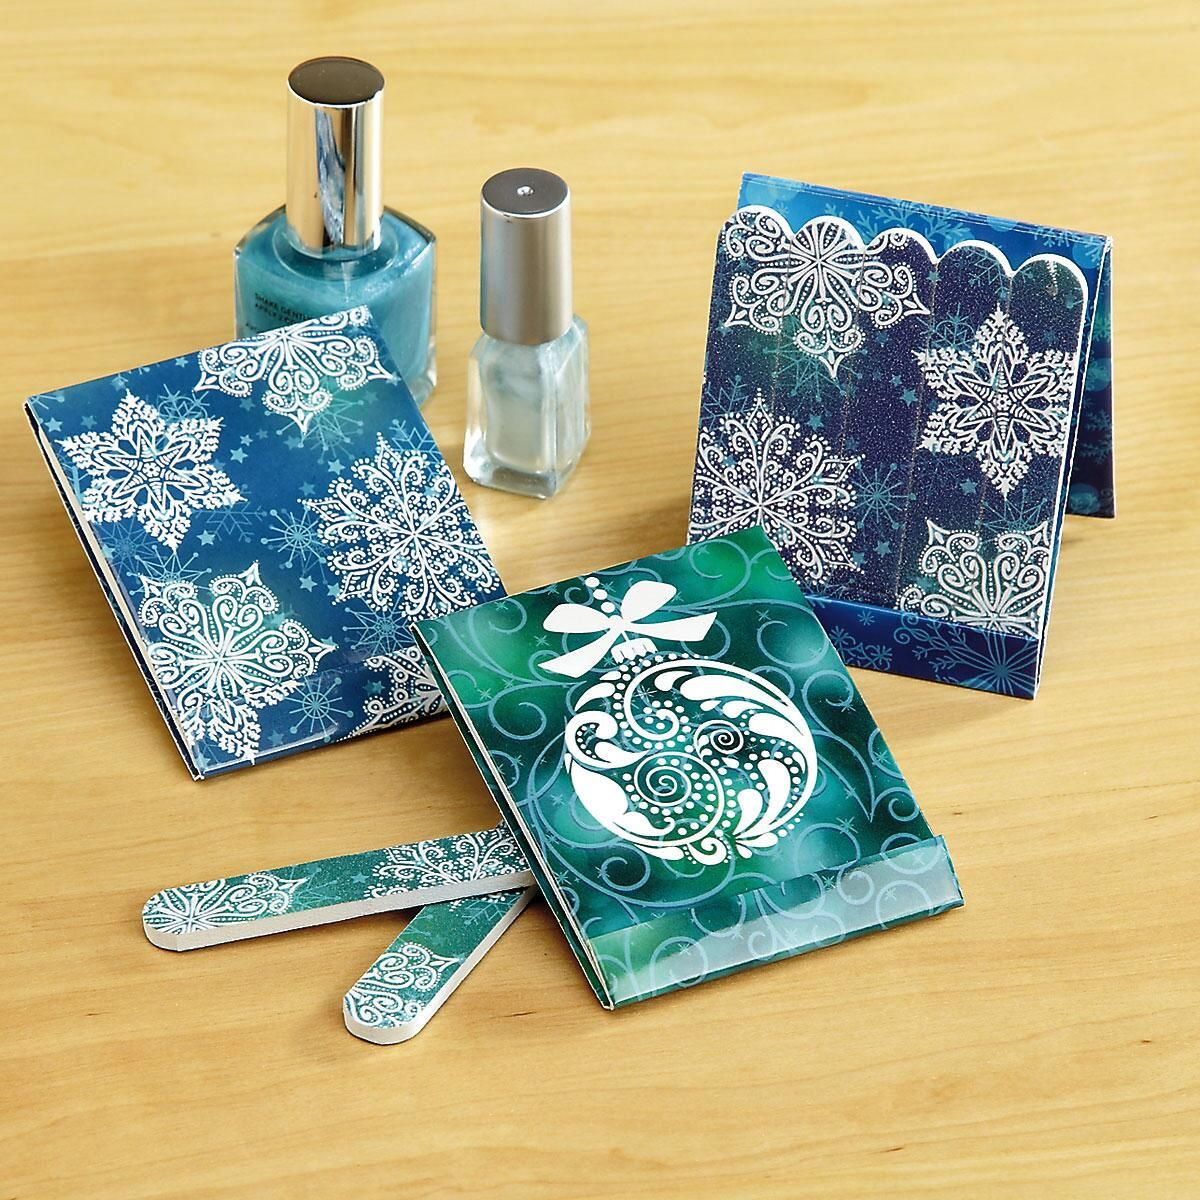 Mini Snowflakes Emery Board Matchbooks - BOGO